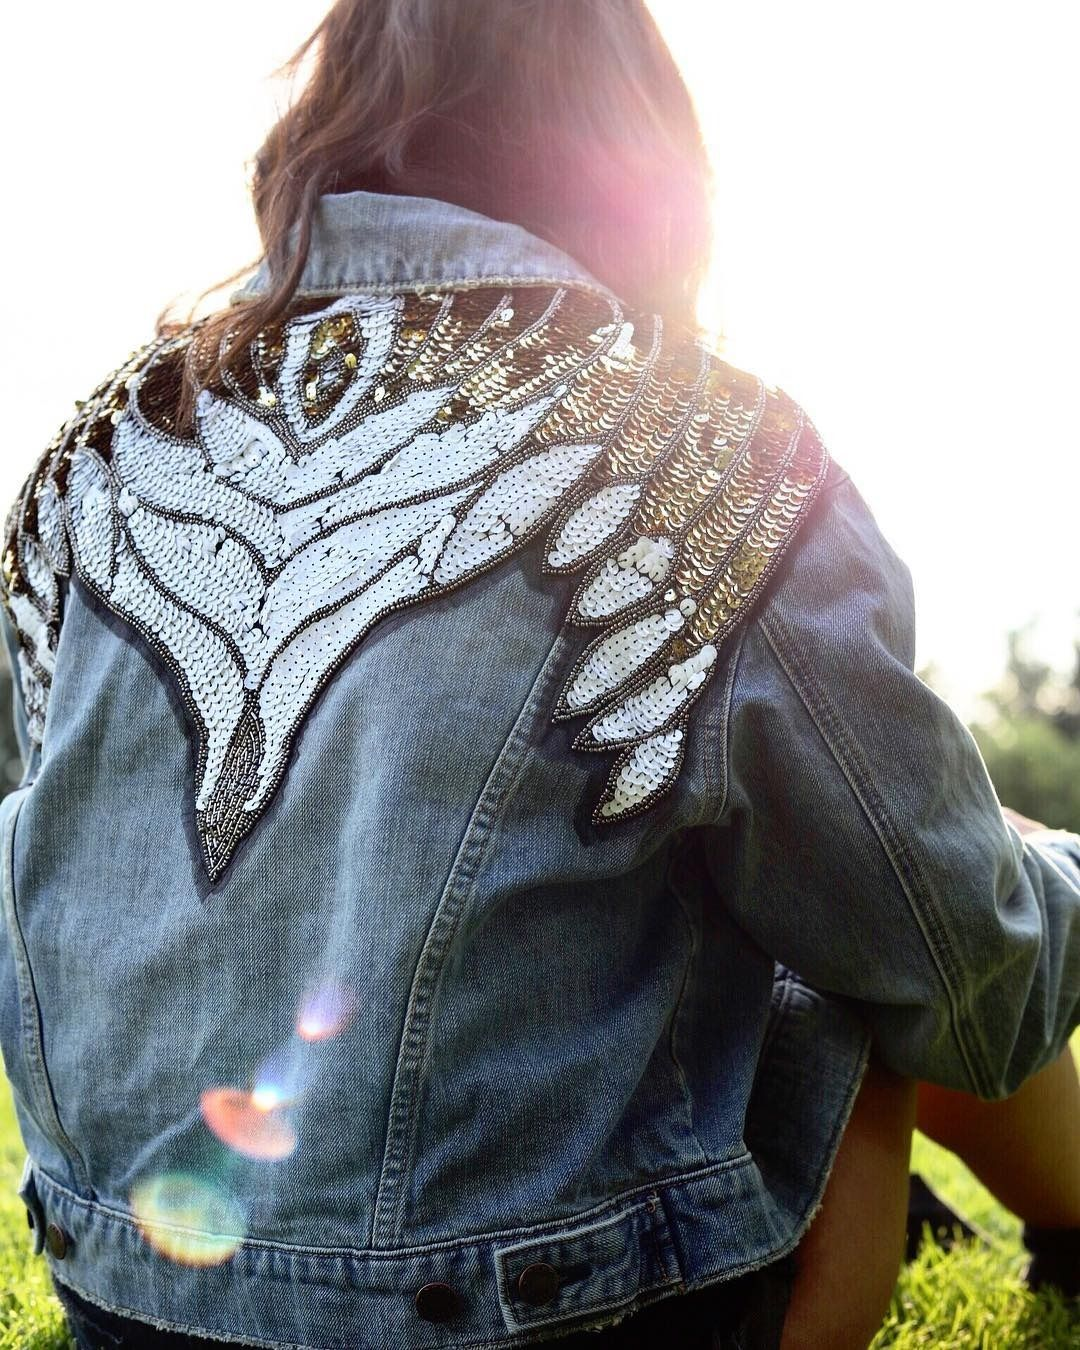 "450 Likes, 10 Comments - Free People Colorado (@fpcolorado) on Instagram: ""shine bright ✌✨ #positivevibes #summerstyle #glamembellisheddenimjacket : @bellzshmellz"""